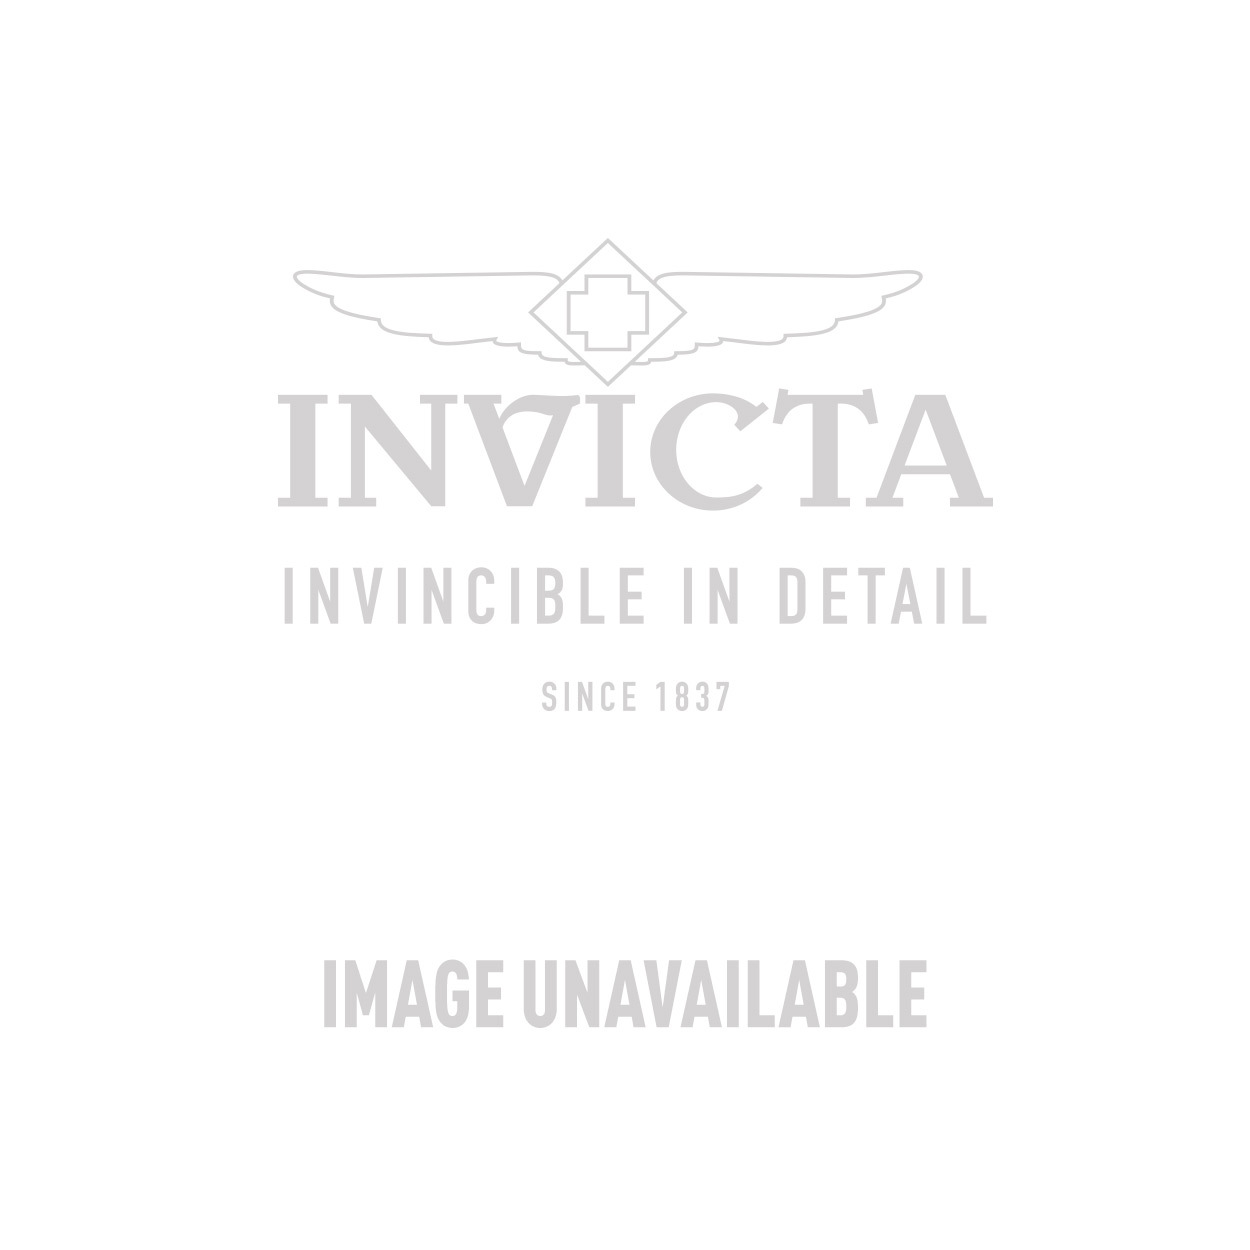 Invicta Reserve Swiss Made Quartz Watch - Gold, Stainless Steel case with Black tone Silicone band - Model 18339